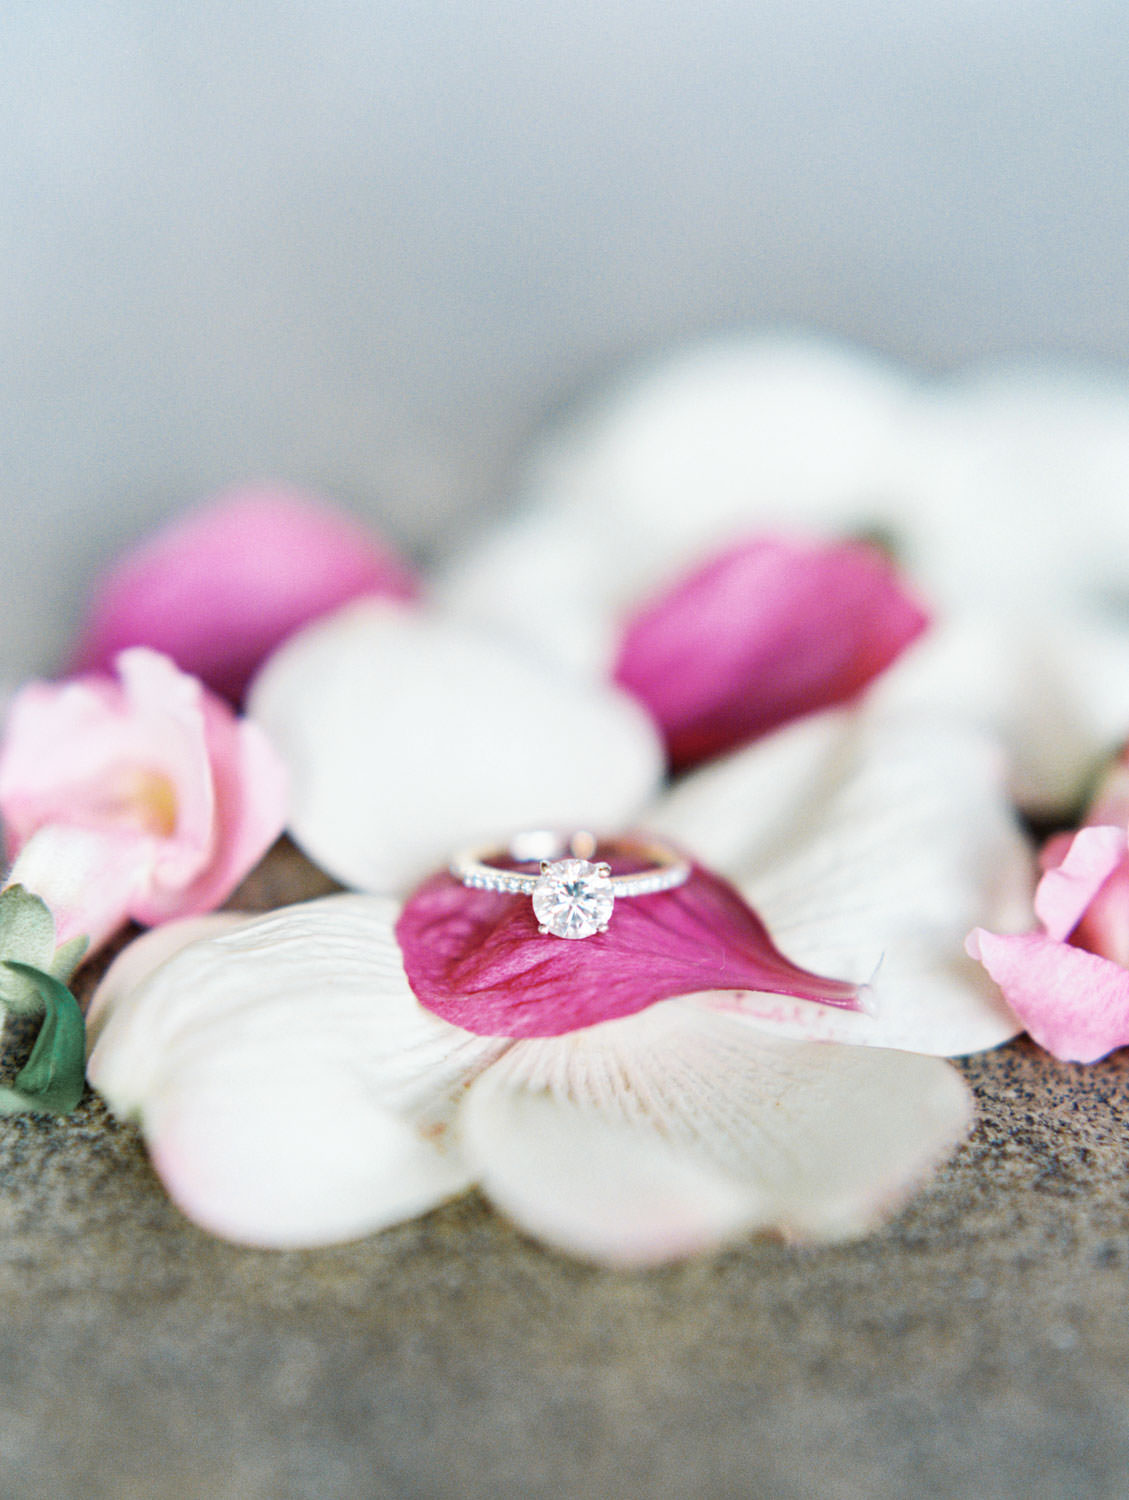 Solitaire diamond engagement ring with flowers. Engagement Photos on film at San Francisco City Hall by Cavin Elizabeth